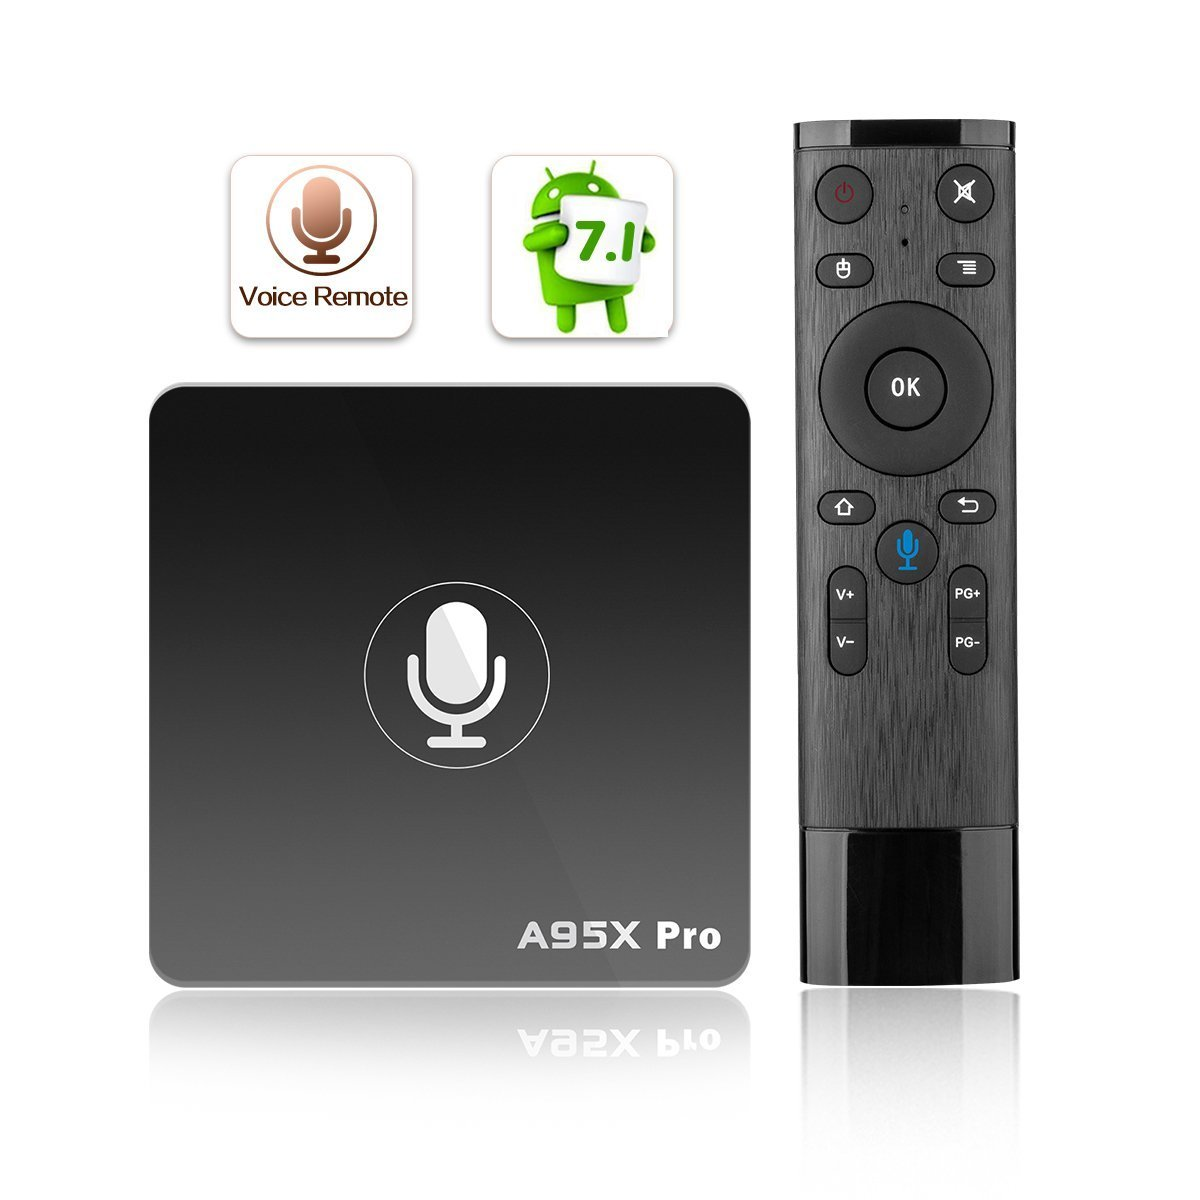 A95X PRO 2018 Media Player Google Android 7.1 TV Box Amlogic Quad-core 2GB RAM 16GB ROM 4K UHD 3D Smart Set Top Box With Voice Remote 2.4Ghz WiFi